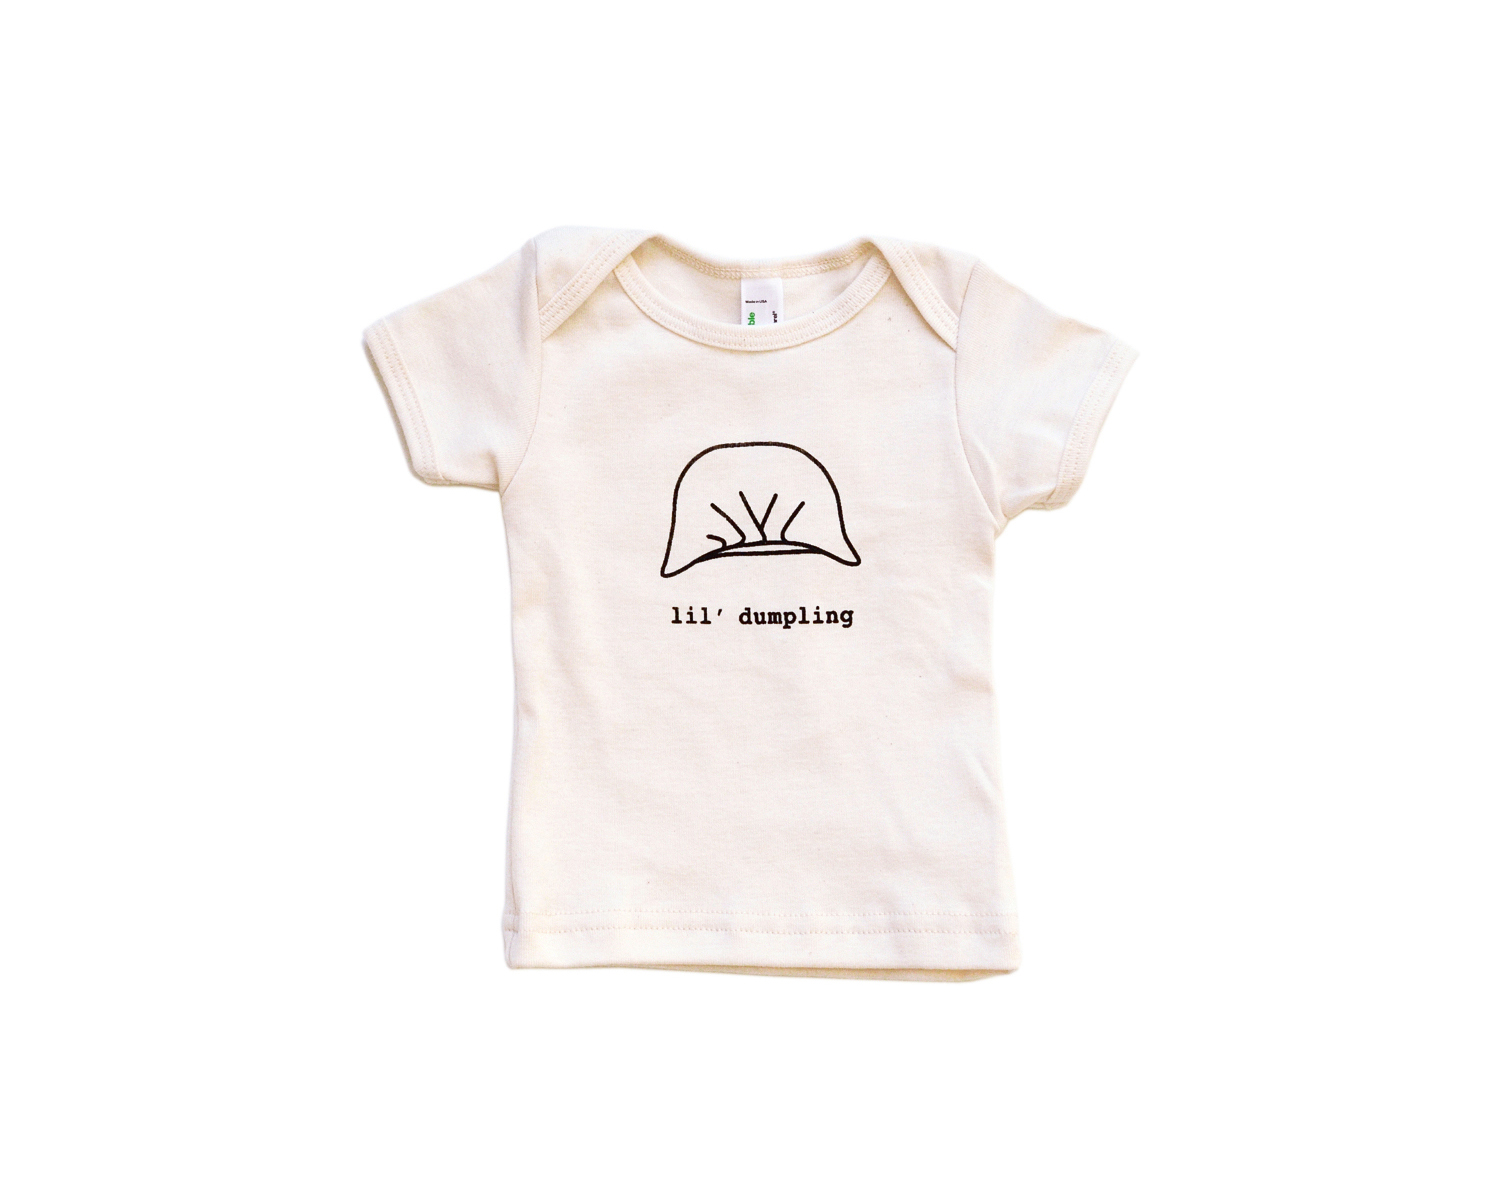 Plate & Pencil Dumpling Infant Lap Tee